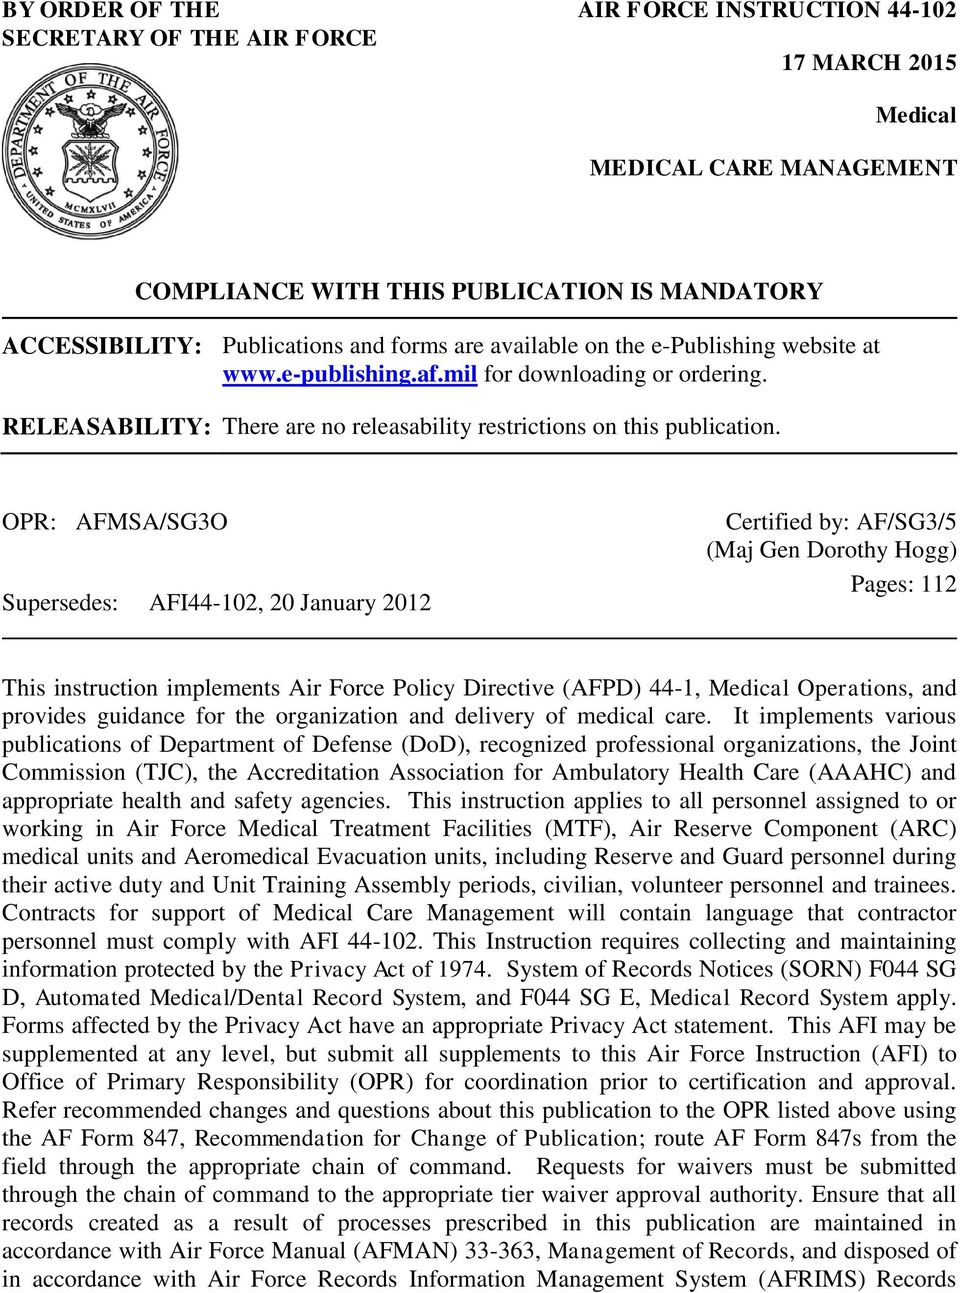 OPR: AFMSA/SG3O Supersedes: AFI44-102, 20 January 2012 Certified by: AF/SG3/5 (Maj Gen Dorothy Hogg) Pages: 112 This instruction implements Air Force Policy Directive (AFPD) 44-1, Medical Operations,